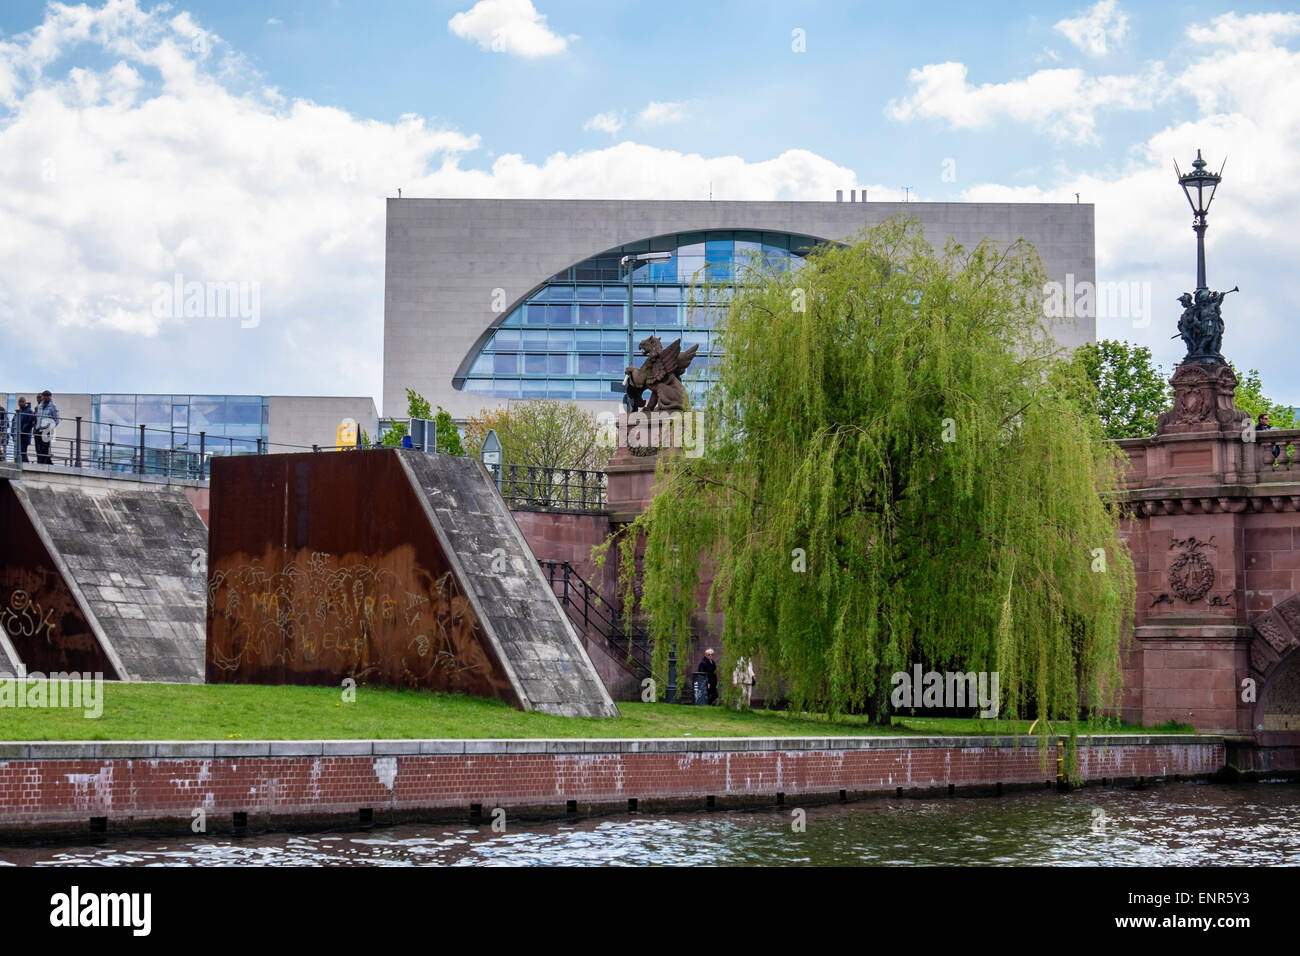 Berlin German Chancellery, modern building houses offices of German Chancellor near river Spree - Stock Image